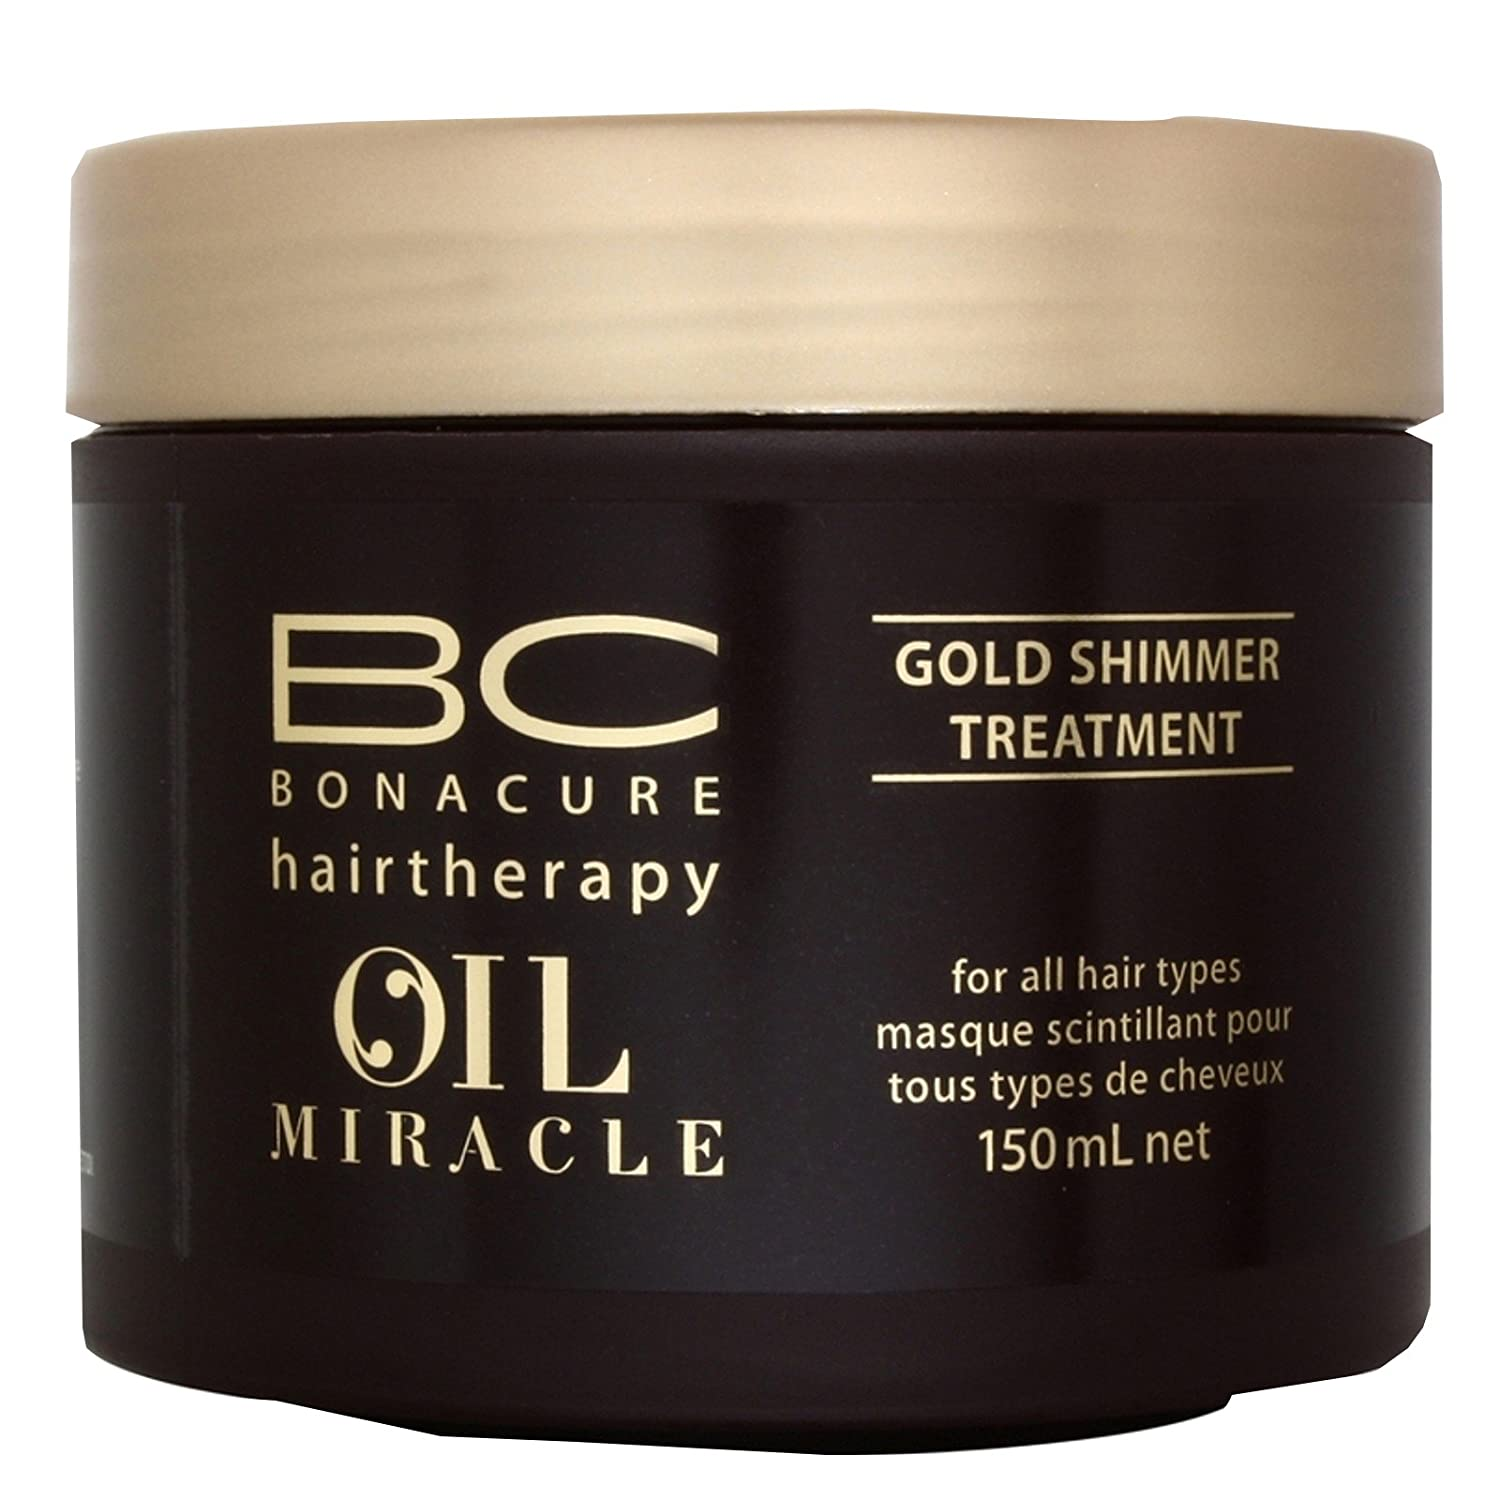 Schwarzkopf Professional - Masque Scintillant pour Cheveux - BC Bonacure Oil Miracle - 150ml 1913876 4045787177510_Blanco